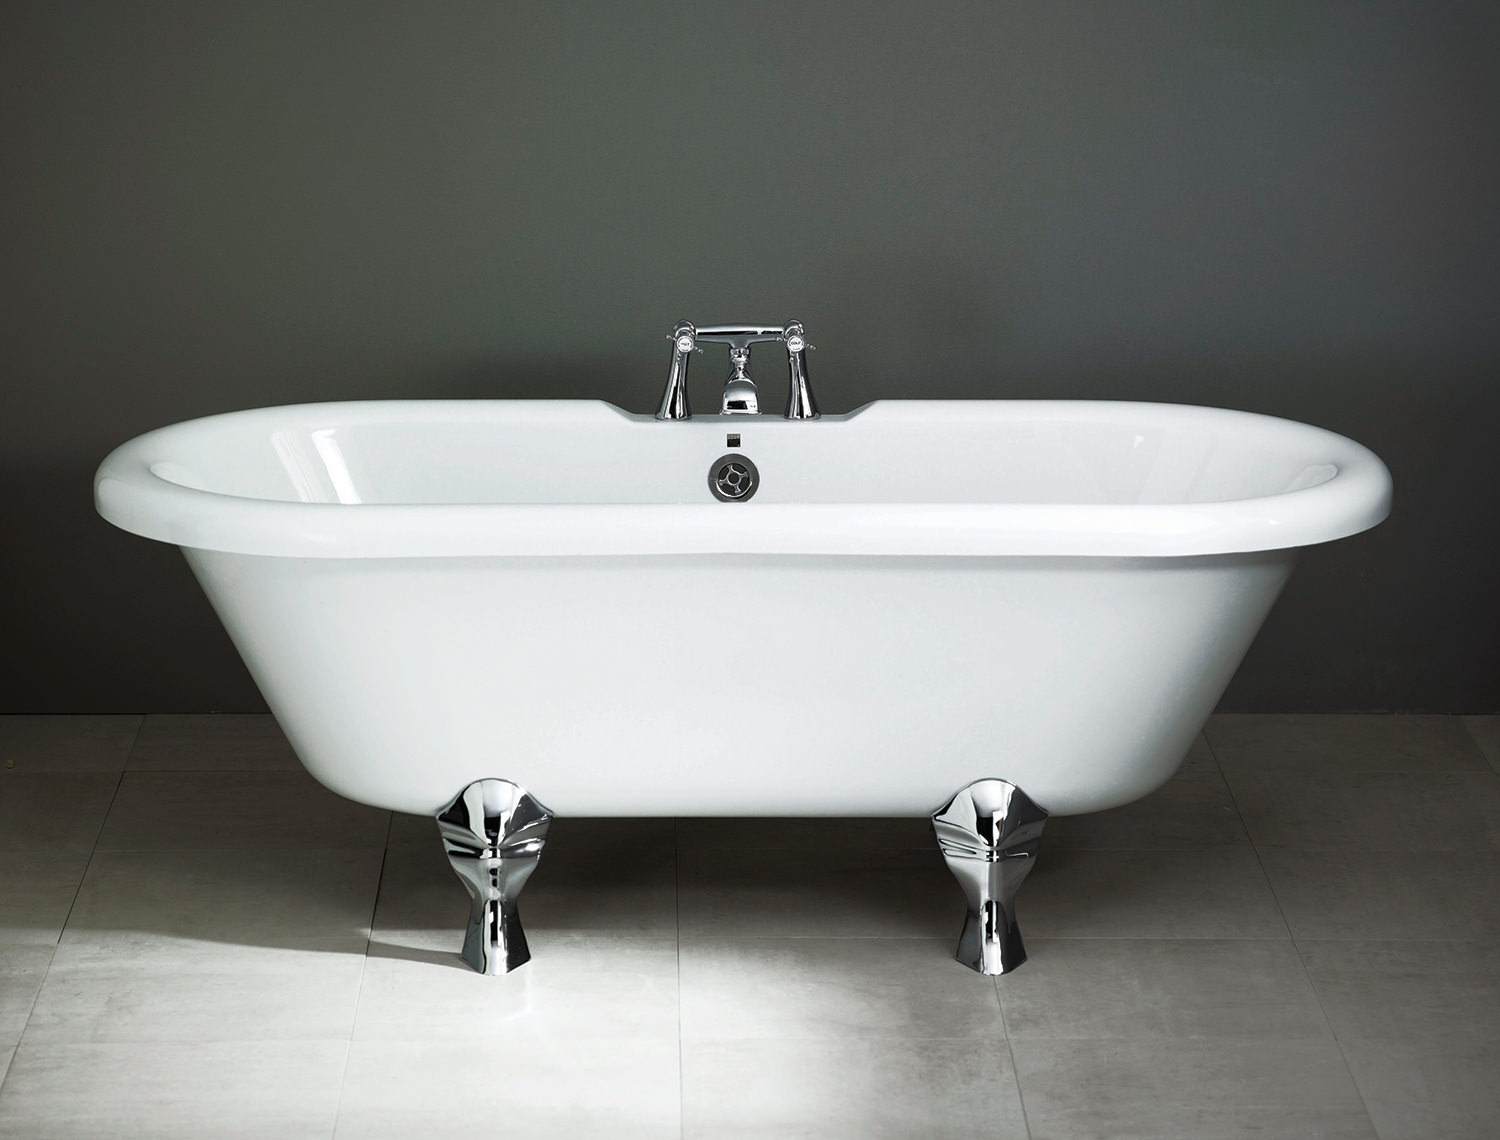 brand new aquadart attacama 1700mm double ended roll top bath tub